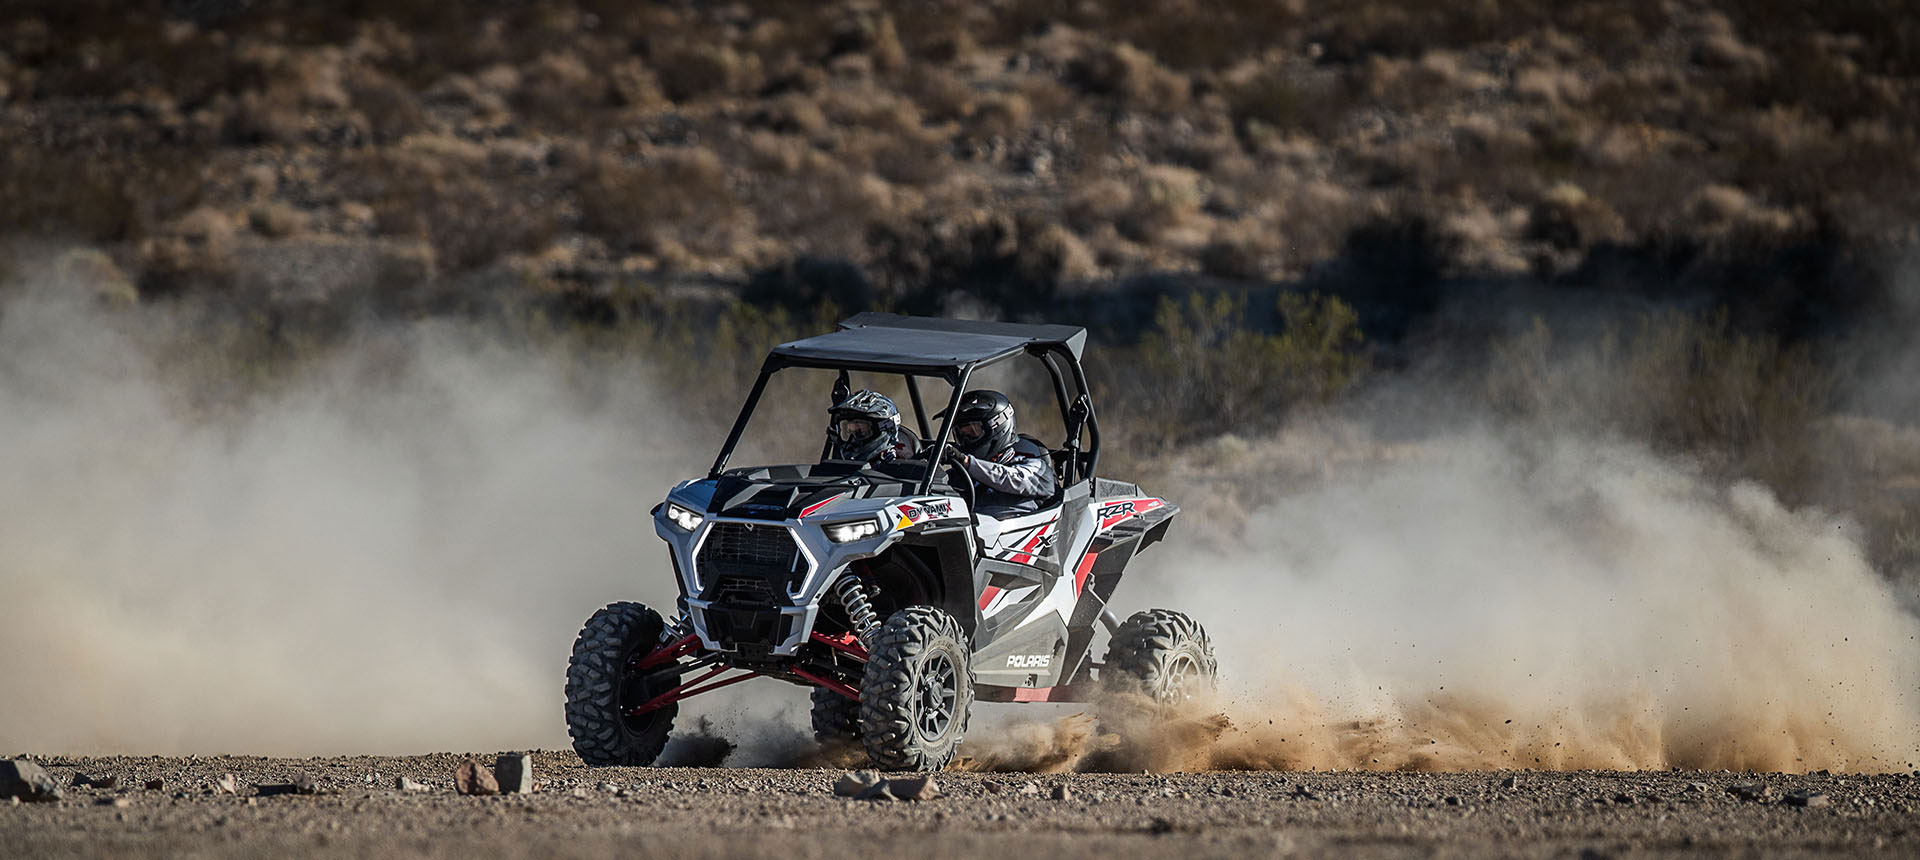 2019 Polaris RZR XP 1000 in Elkhart, Indiana - Photo 7